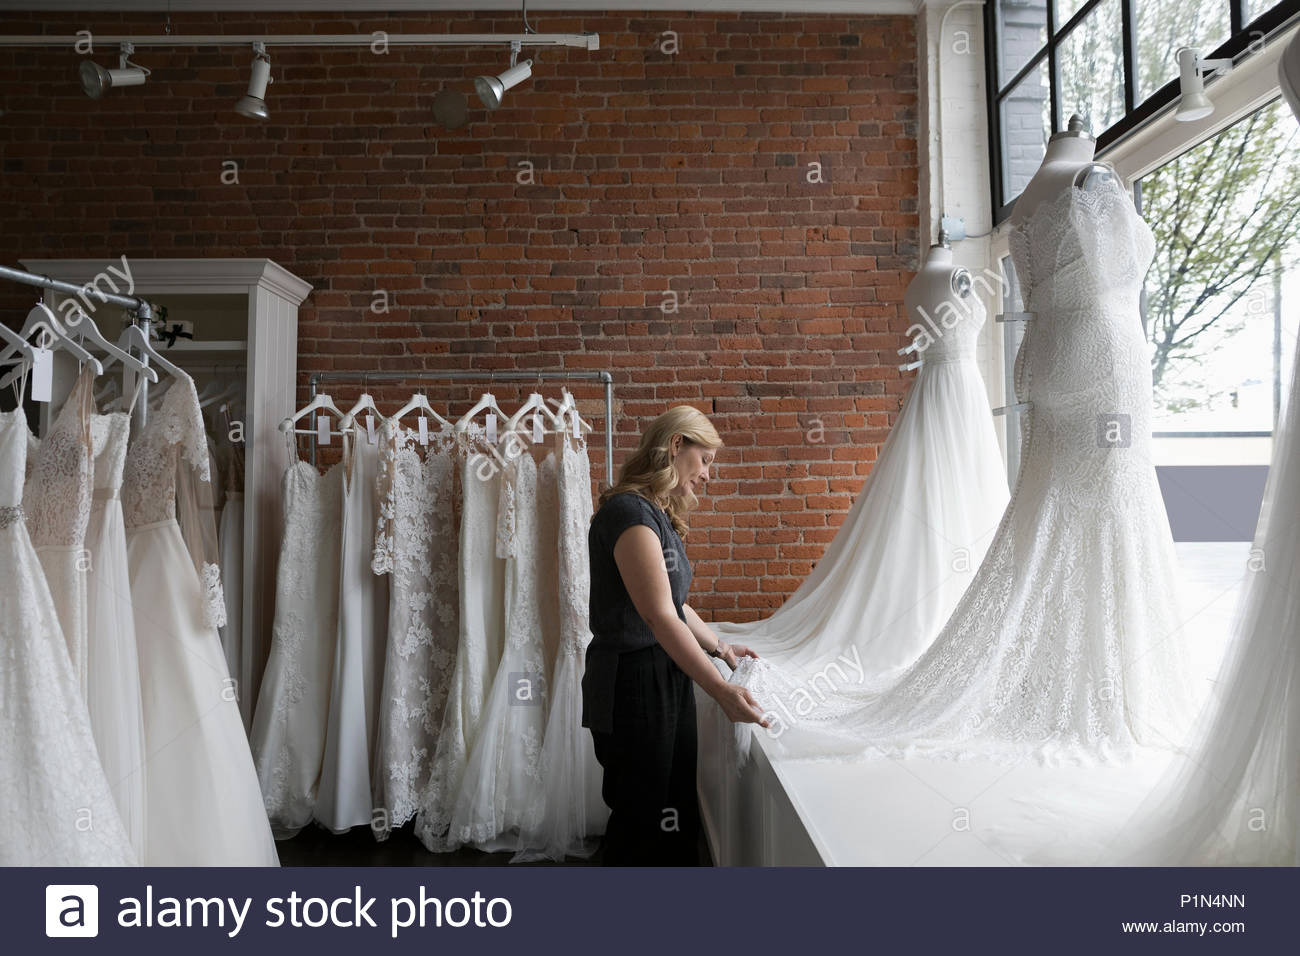 Bridal boutique owner arranging wedding dress window display - Stock Image